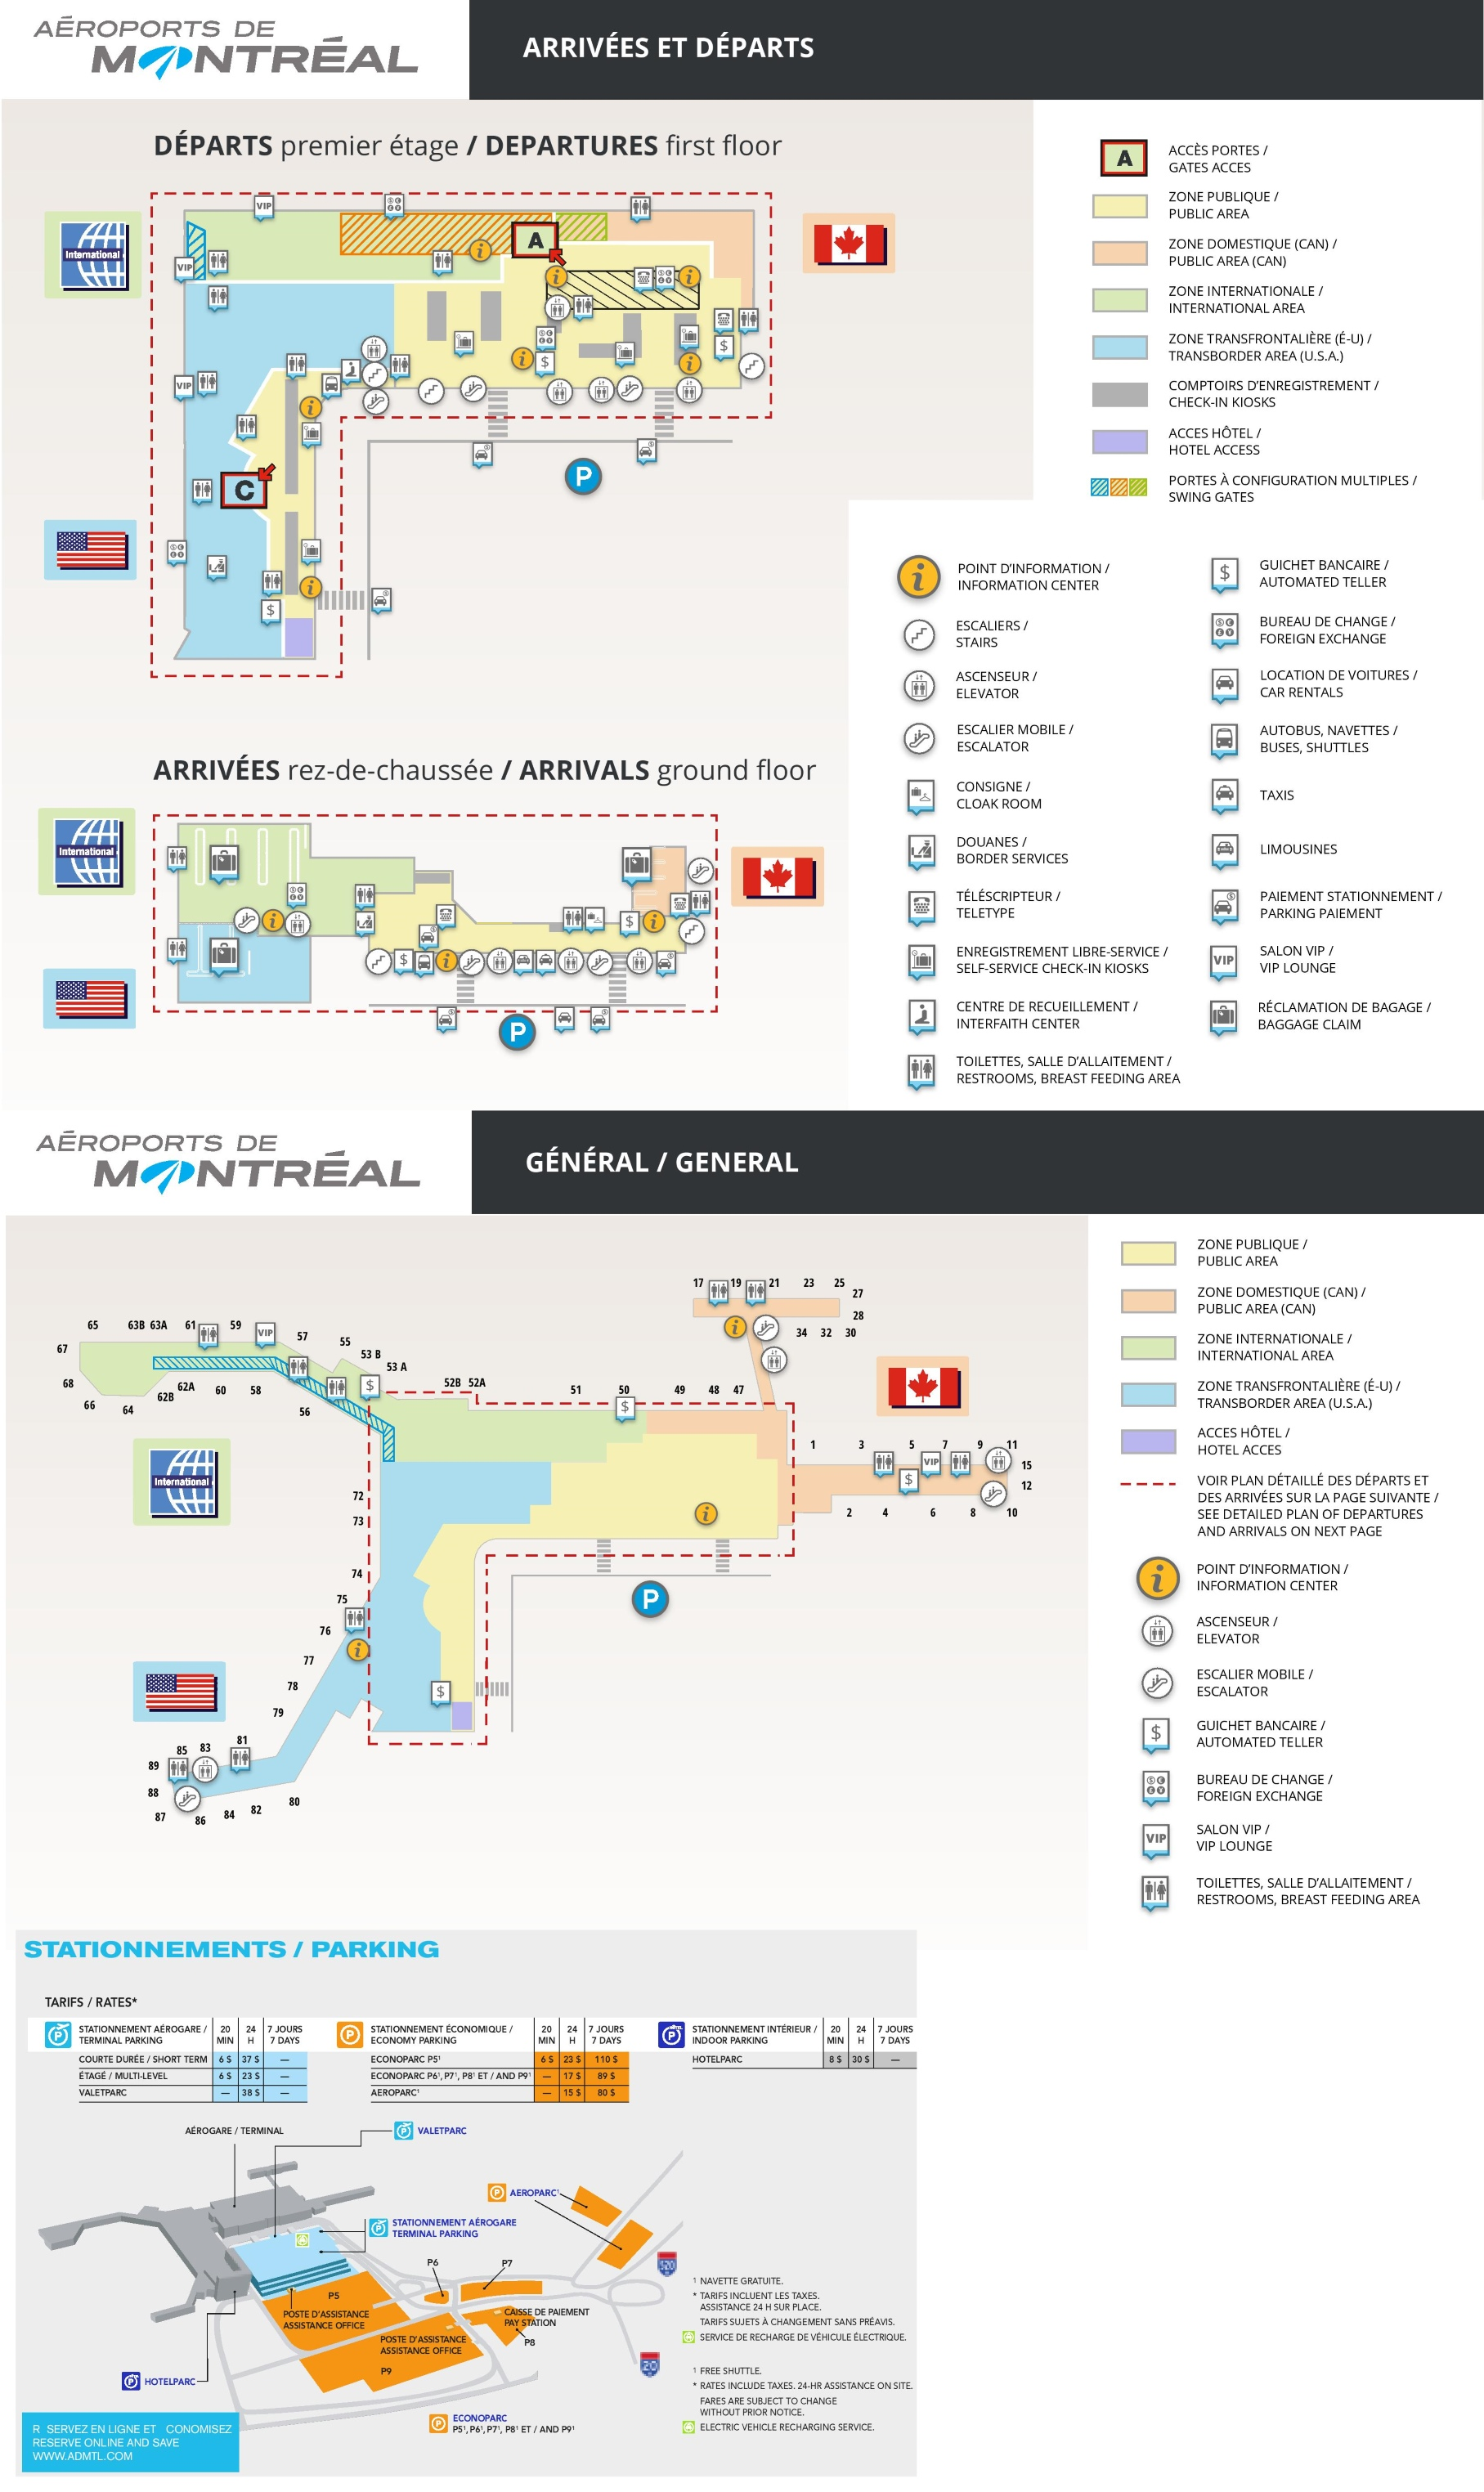 Montreal Airport Map Montreal airport map